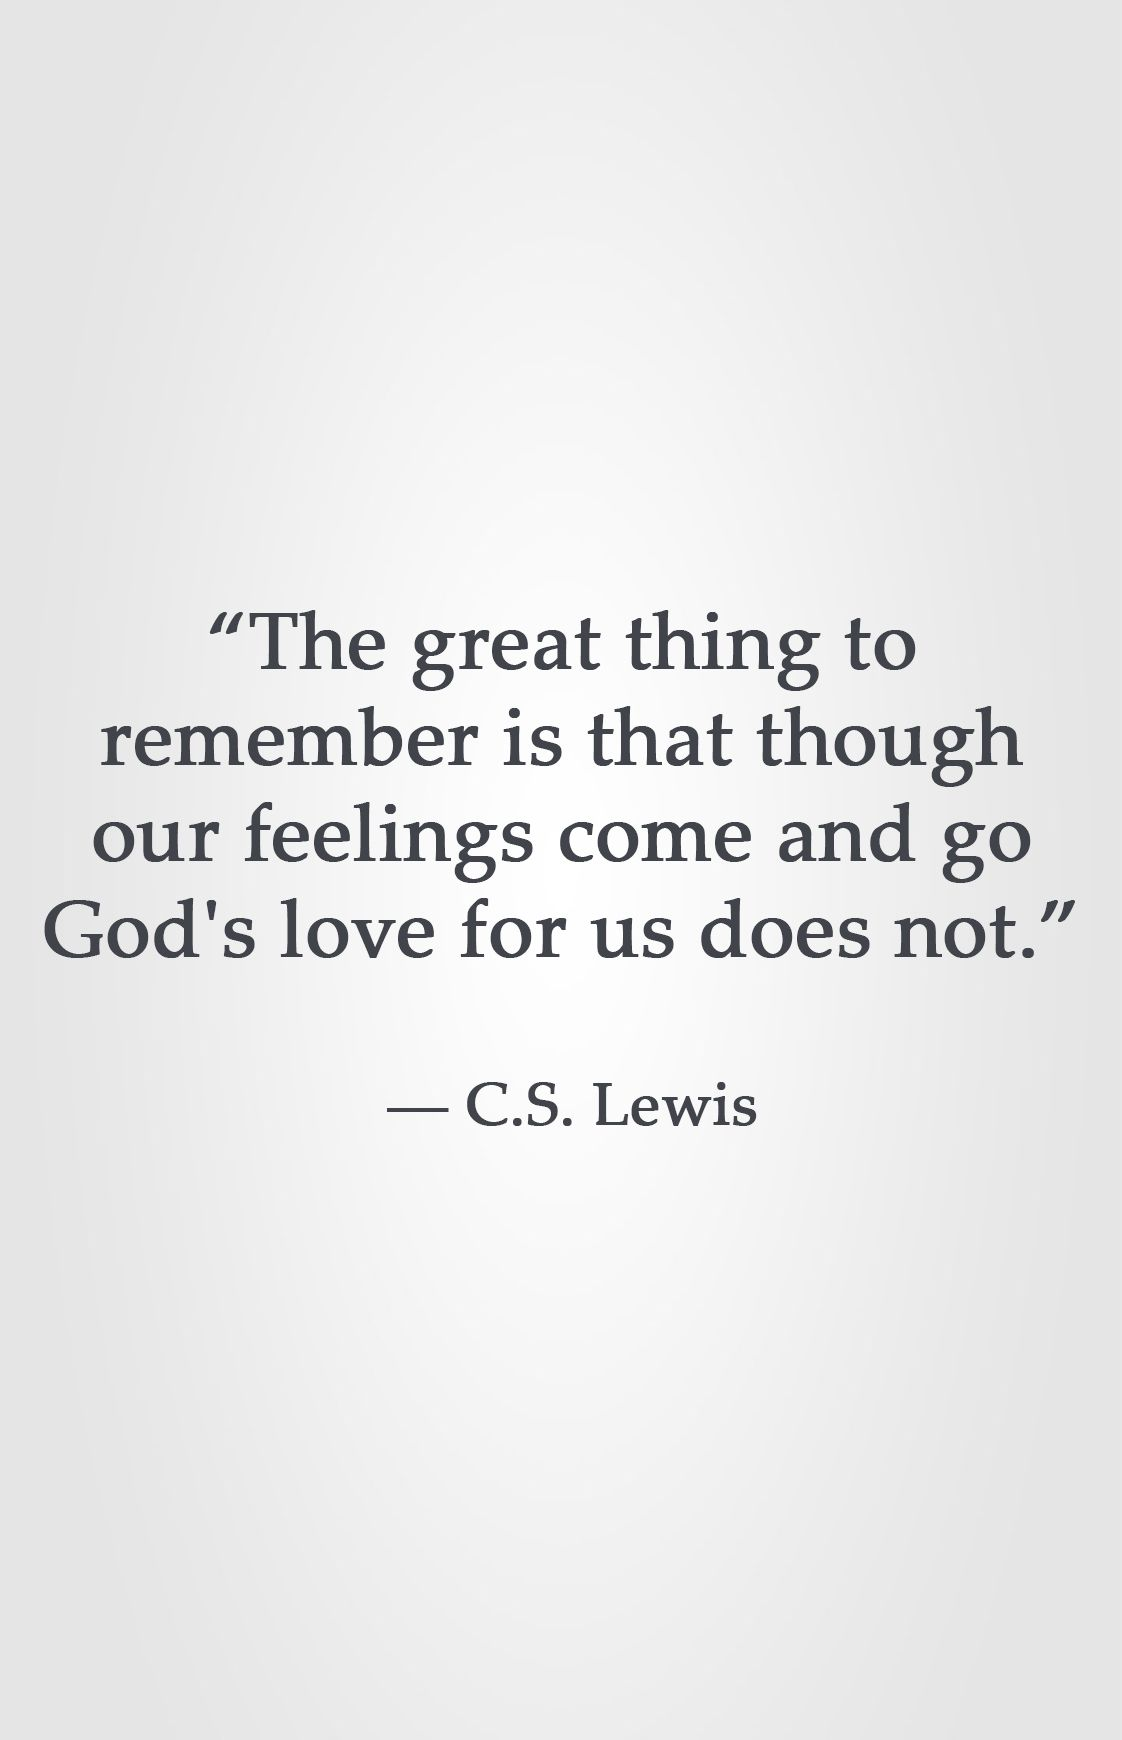 God's Love Quotes Magnificent The Great Thing To Remember Is That Though Our Feelings Come And Go